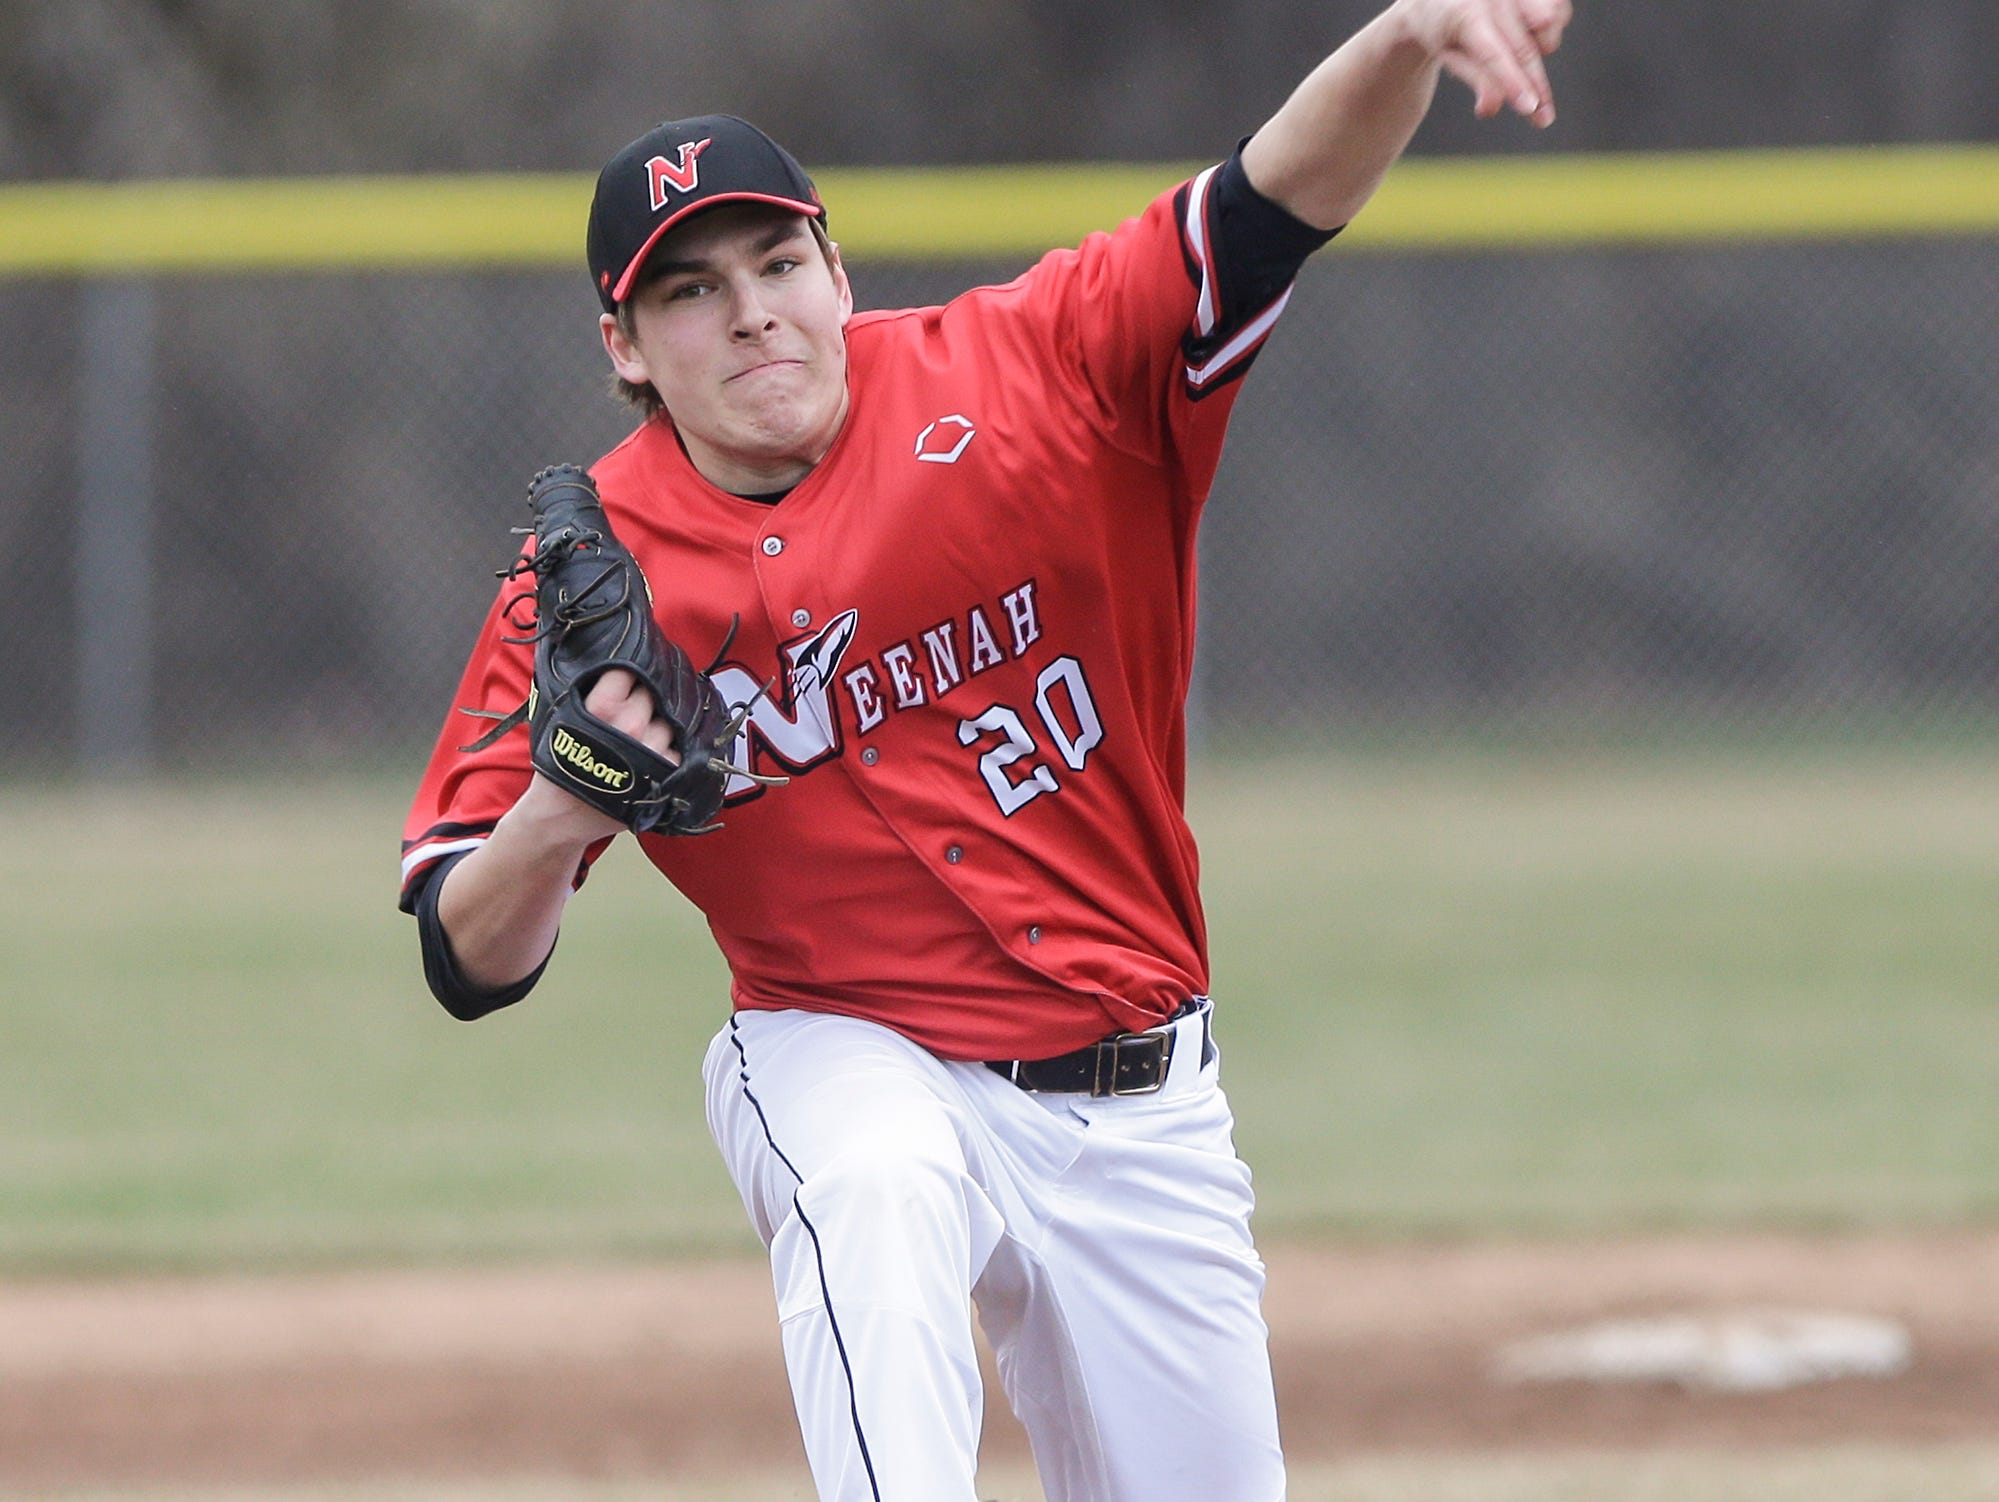 Neenah High School baseball's Jacob Leneau pitches against Fond du Lac High School during their game Thursday, April 18, 2019 in Fond du Lac, Wis. Doug Raflik/USA TODAY NETWORK-Wisconsin